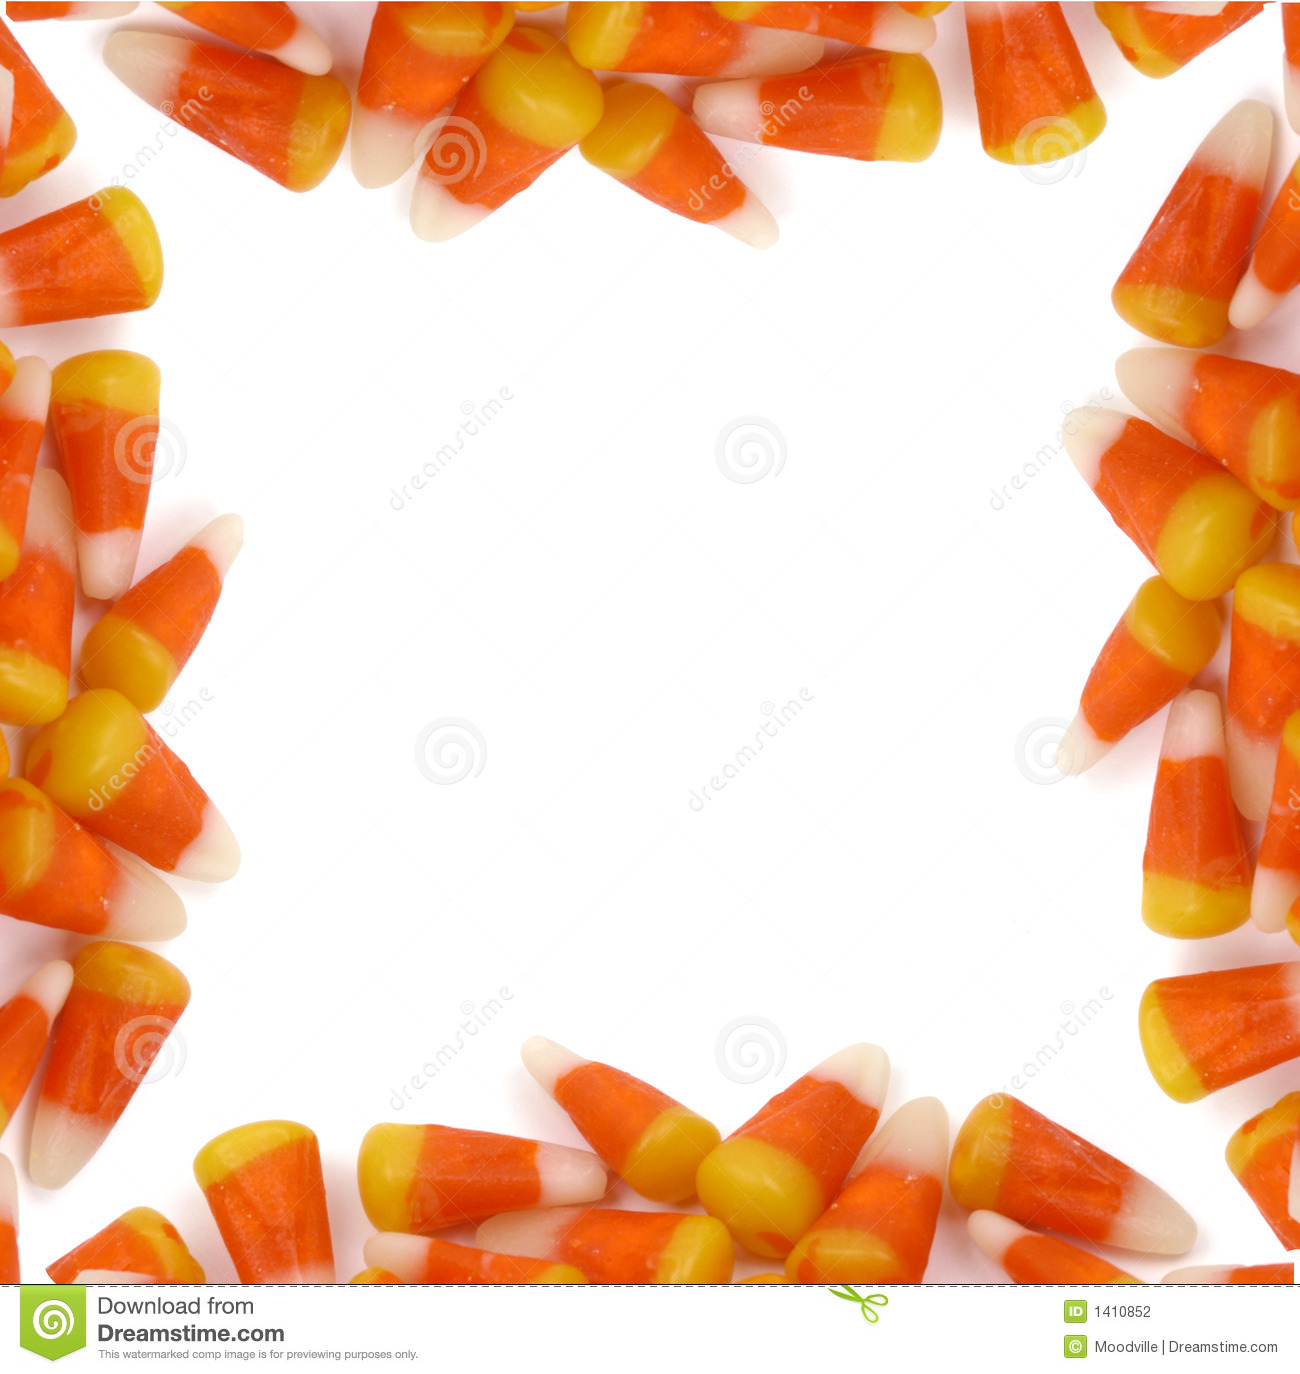 Halloween Candy Corn Wallpapers HD Desktop 1300x1374